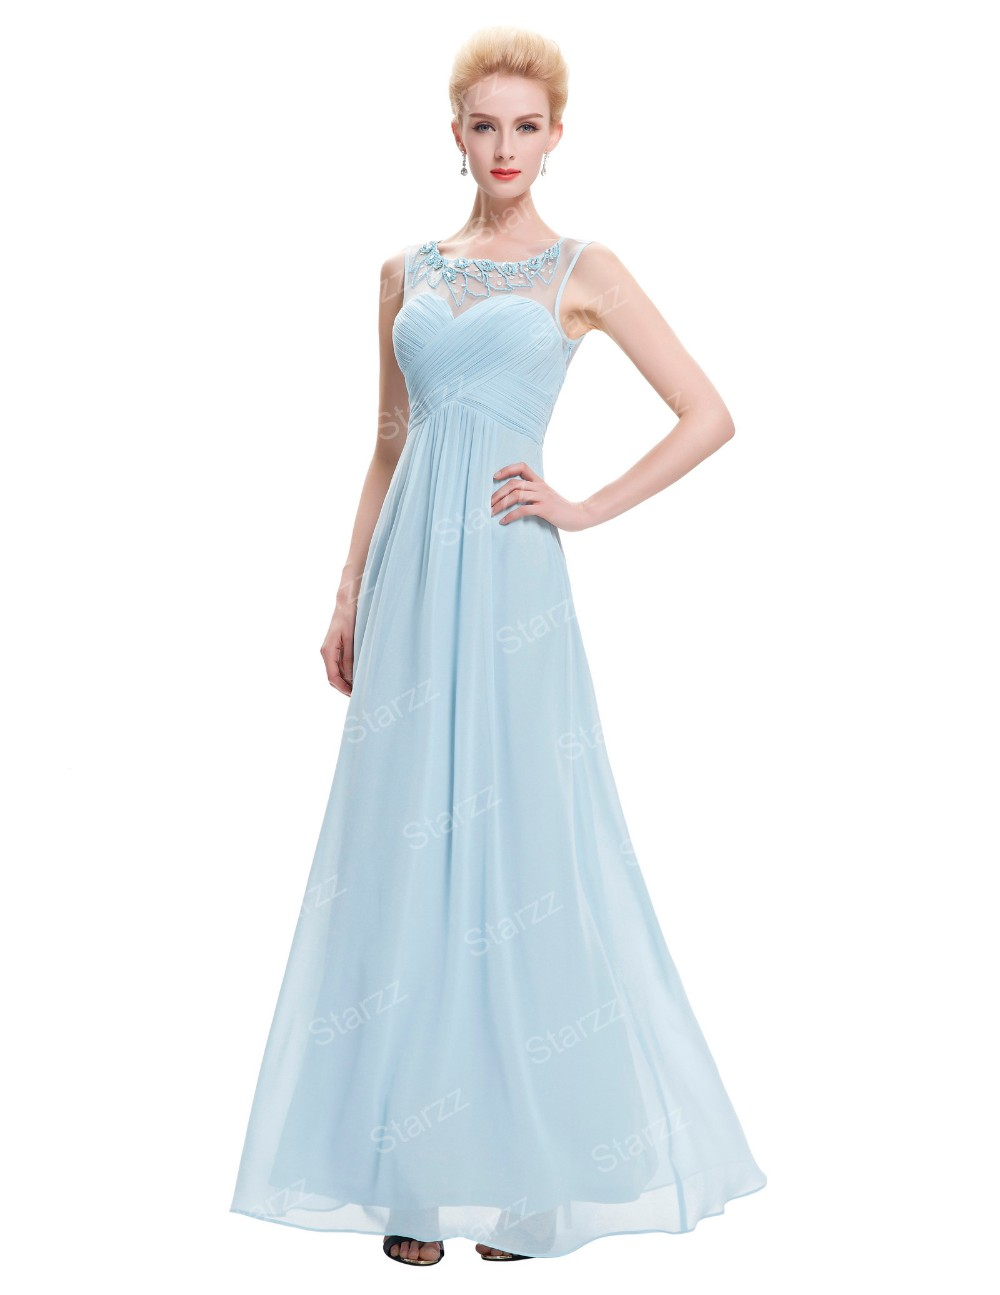 Starzz sleeveless light blue chiffon long bridesmaid dress starzz sleeveless light blue chiffon long bridesmaid dress st000060 5 ombrellifo Images